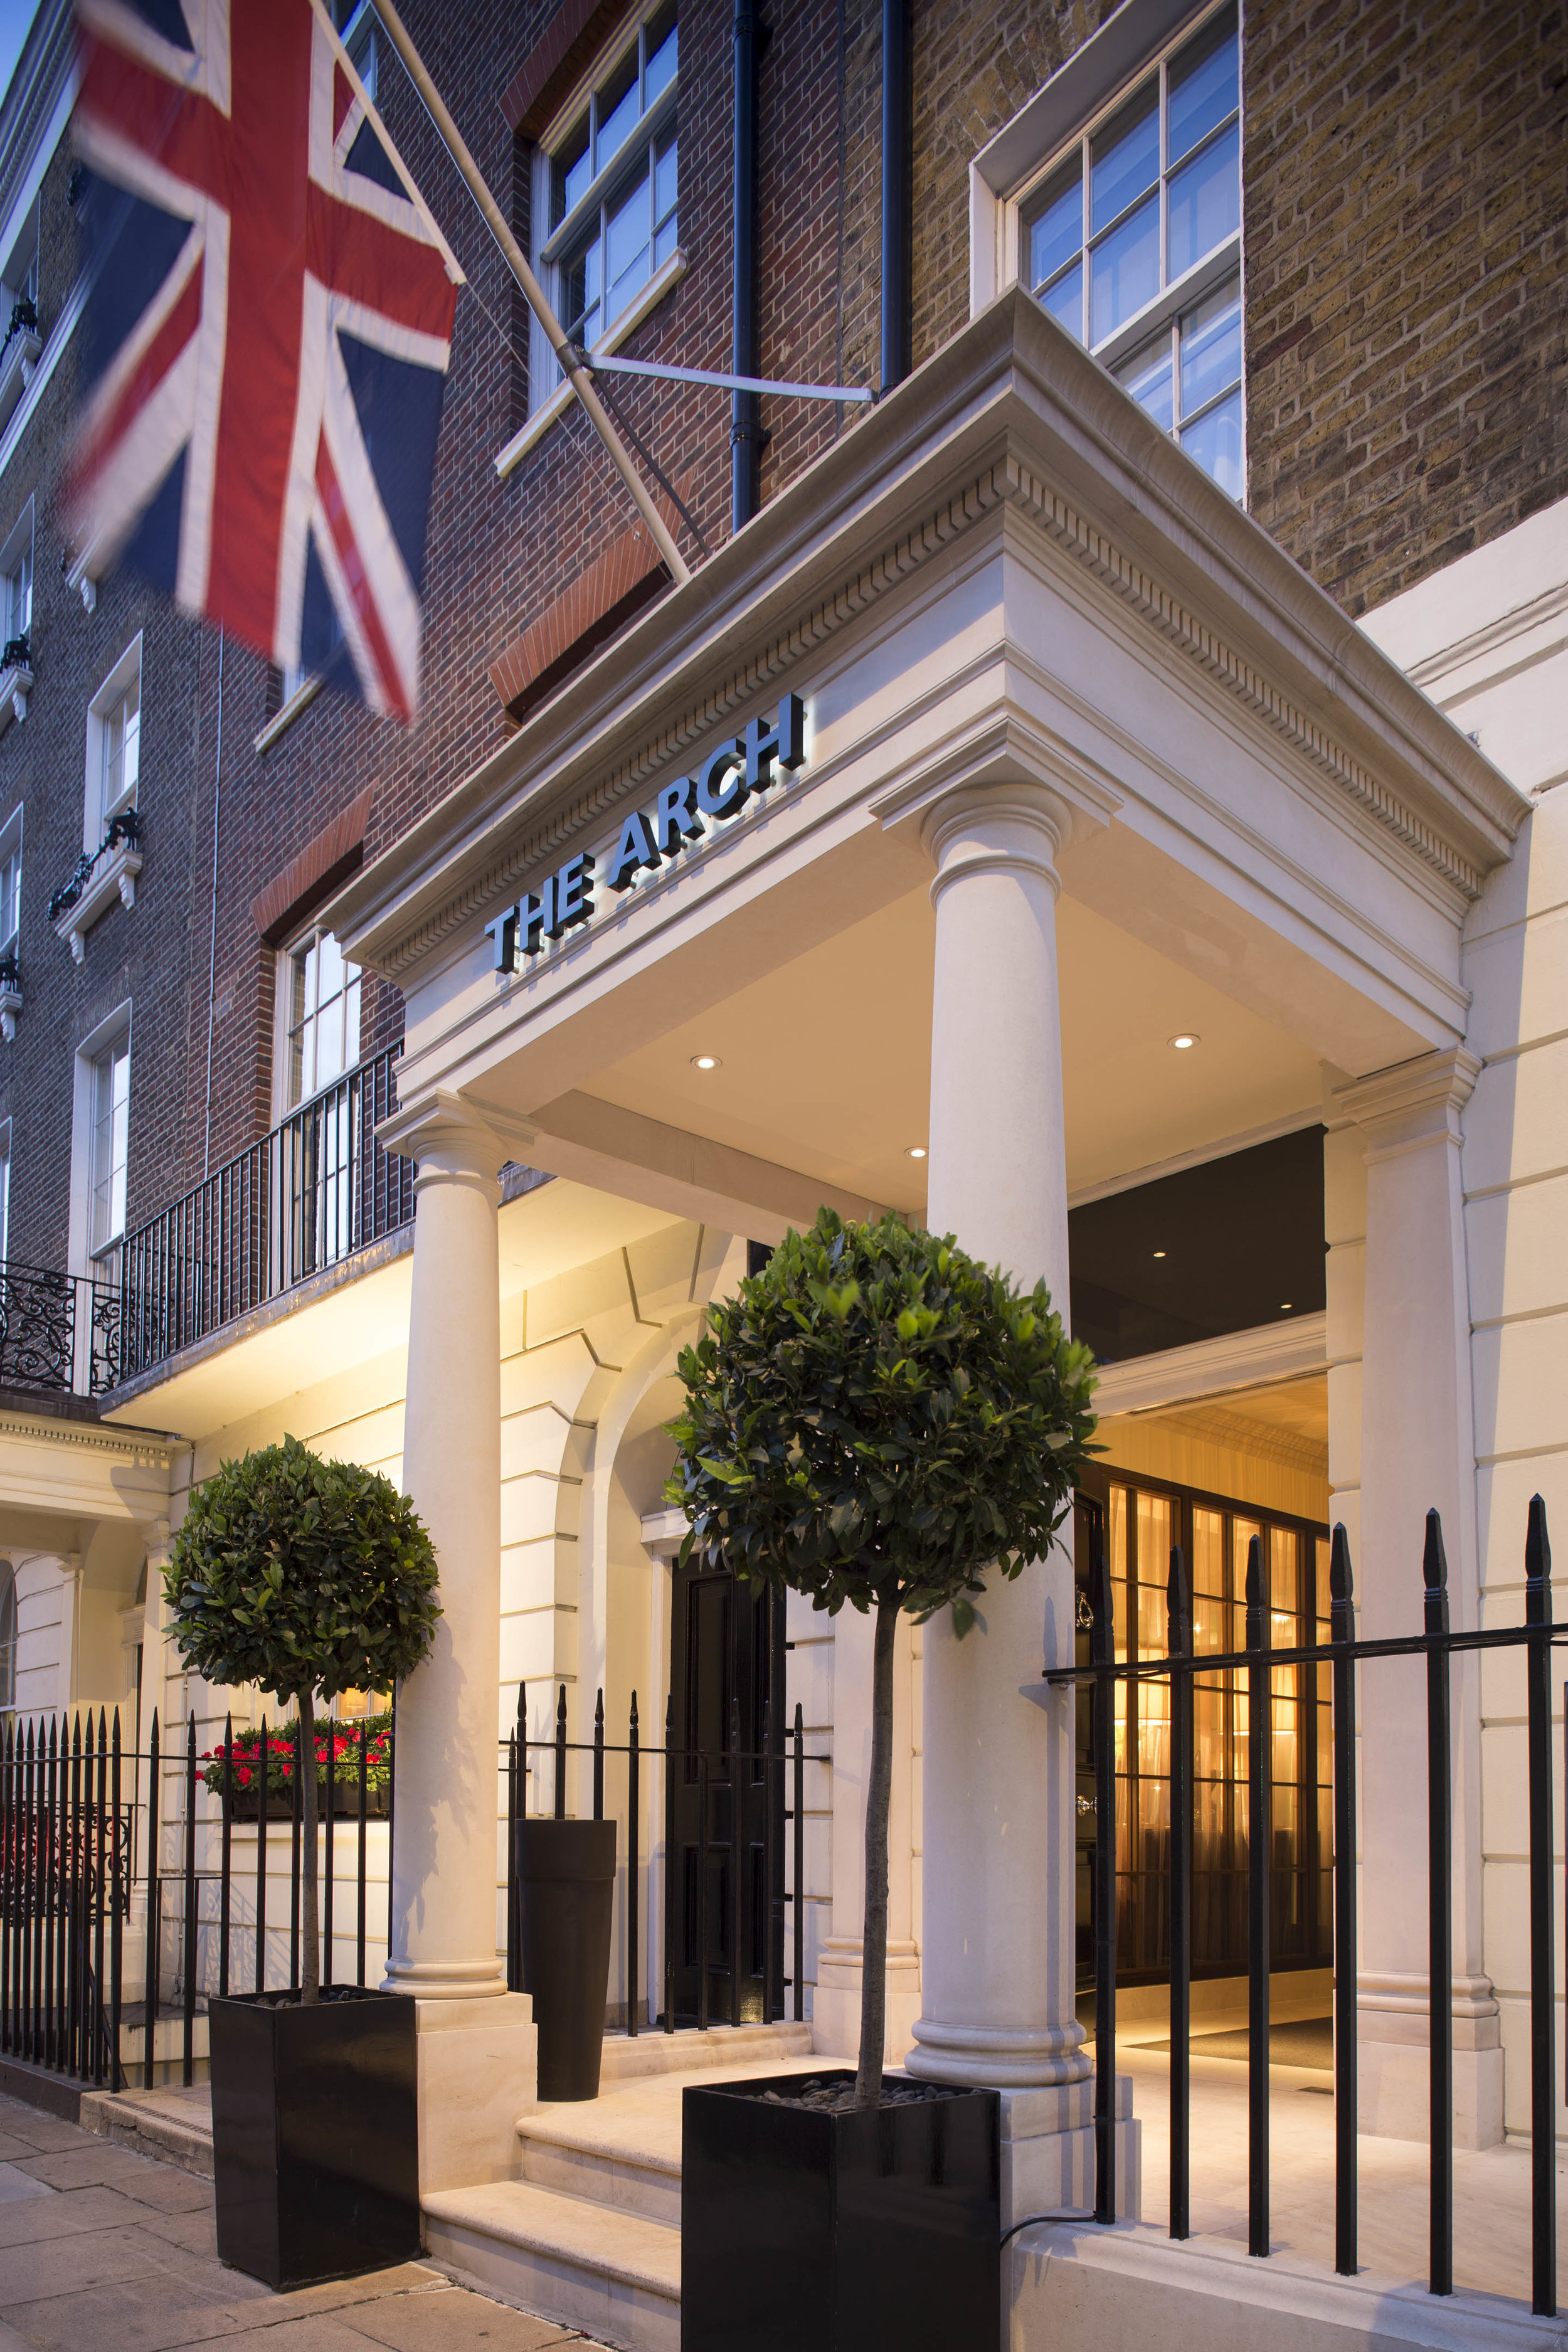 1. Exterior, The Arch London. Photography must be credited to The Arch London - Copy.jpg